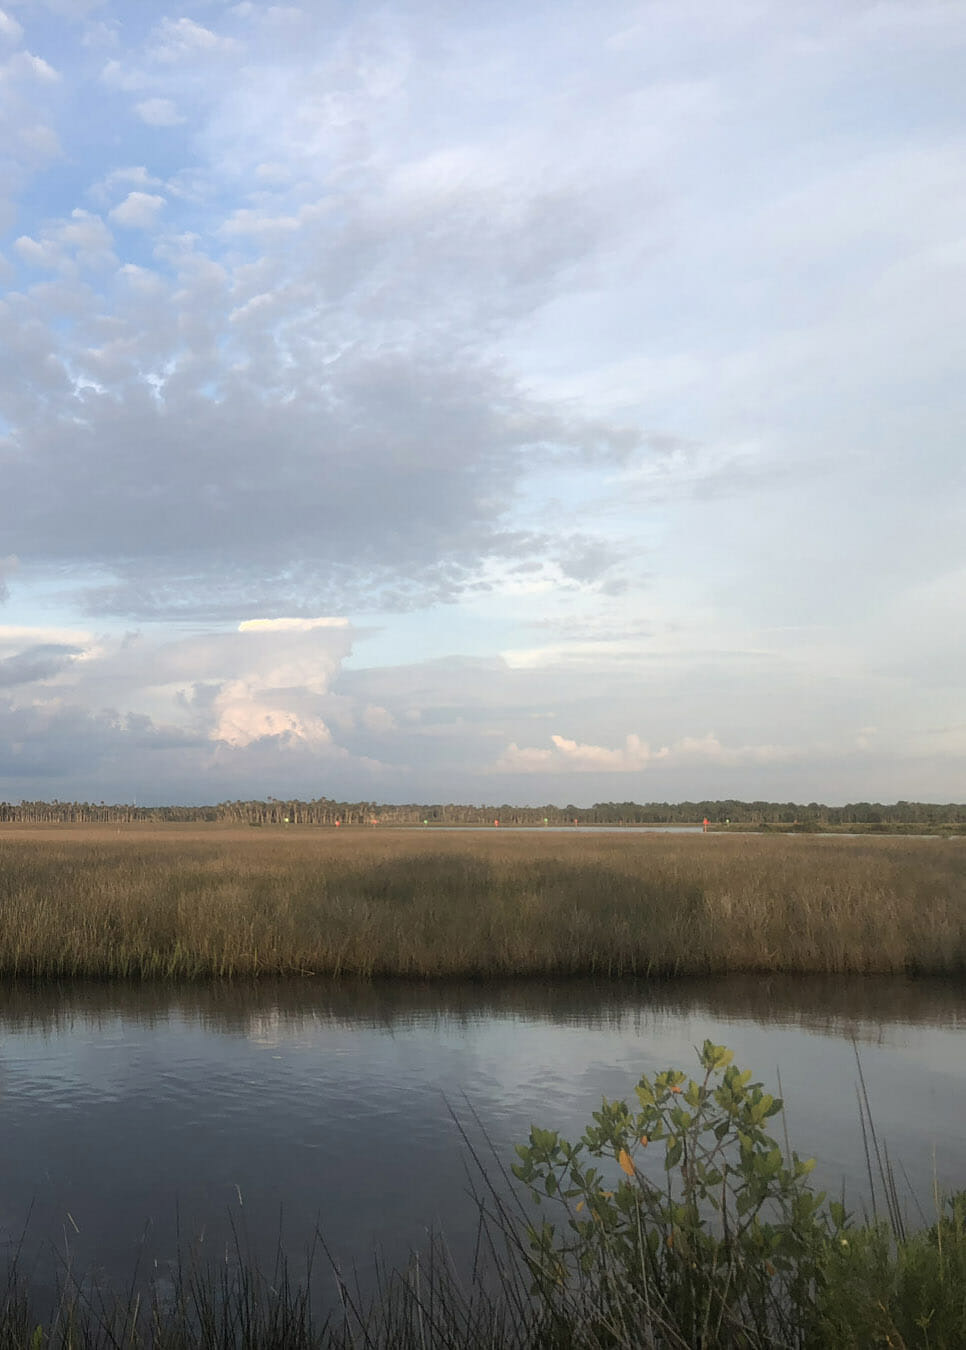 Where the highway ends, Bayport Park begins. Perched on the edge of the estuary where the Weeki Wachee River meets the Gulf of Mexico, it offers spectacular sunset views along with its water access.